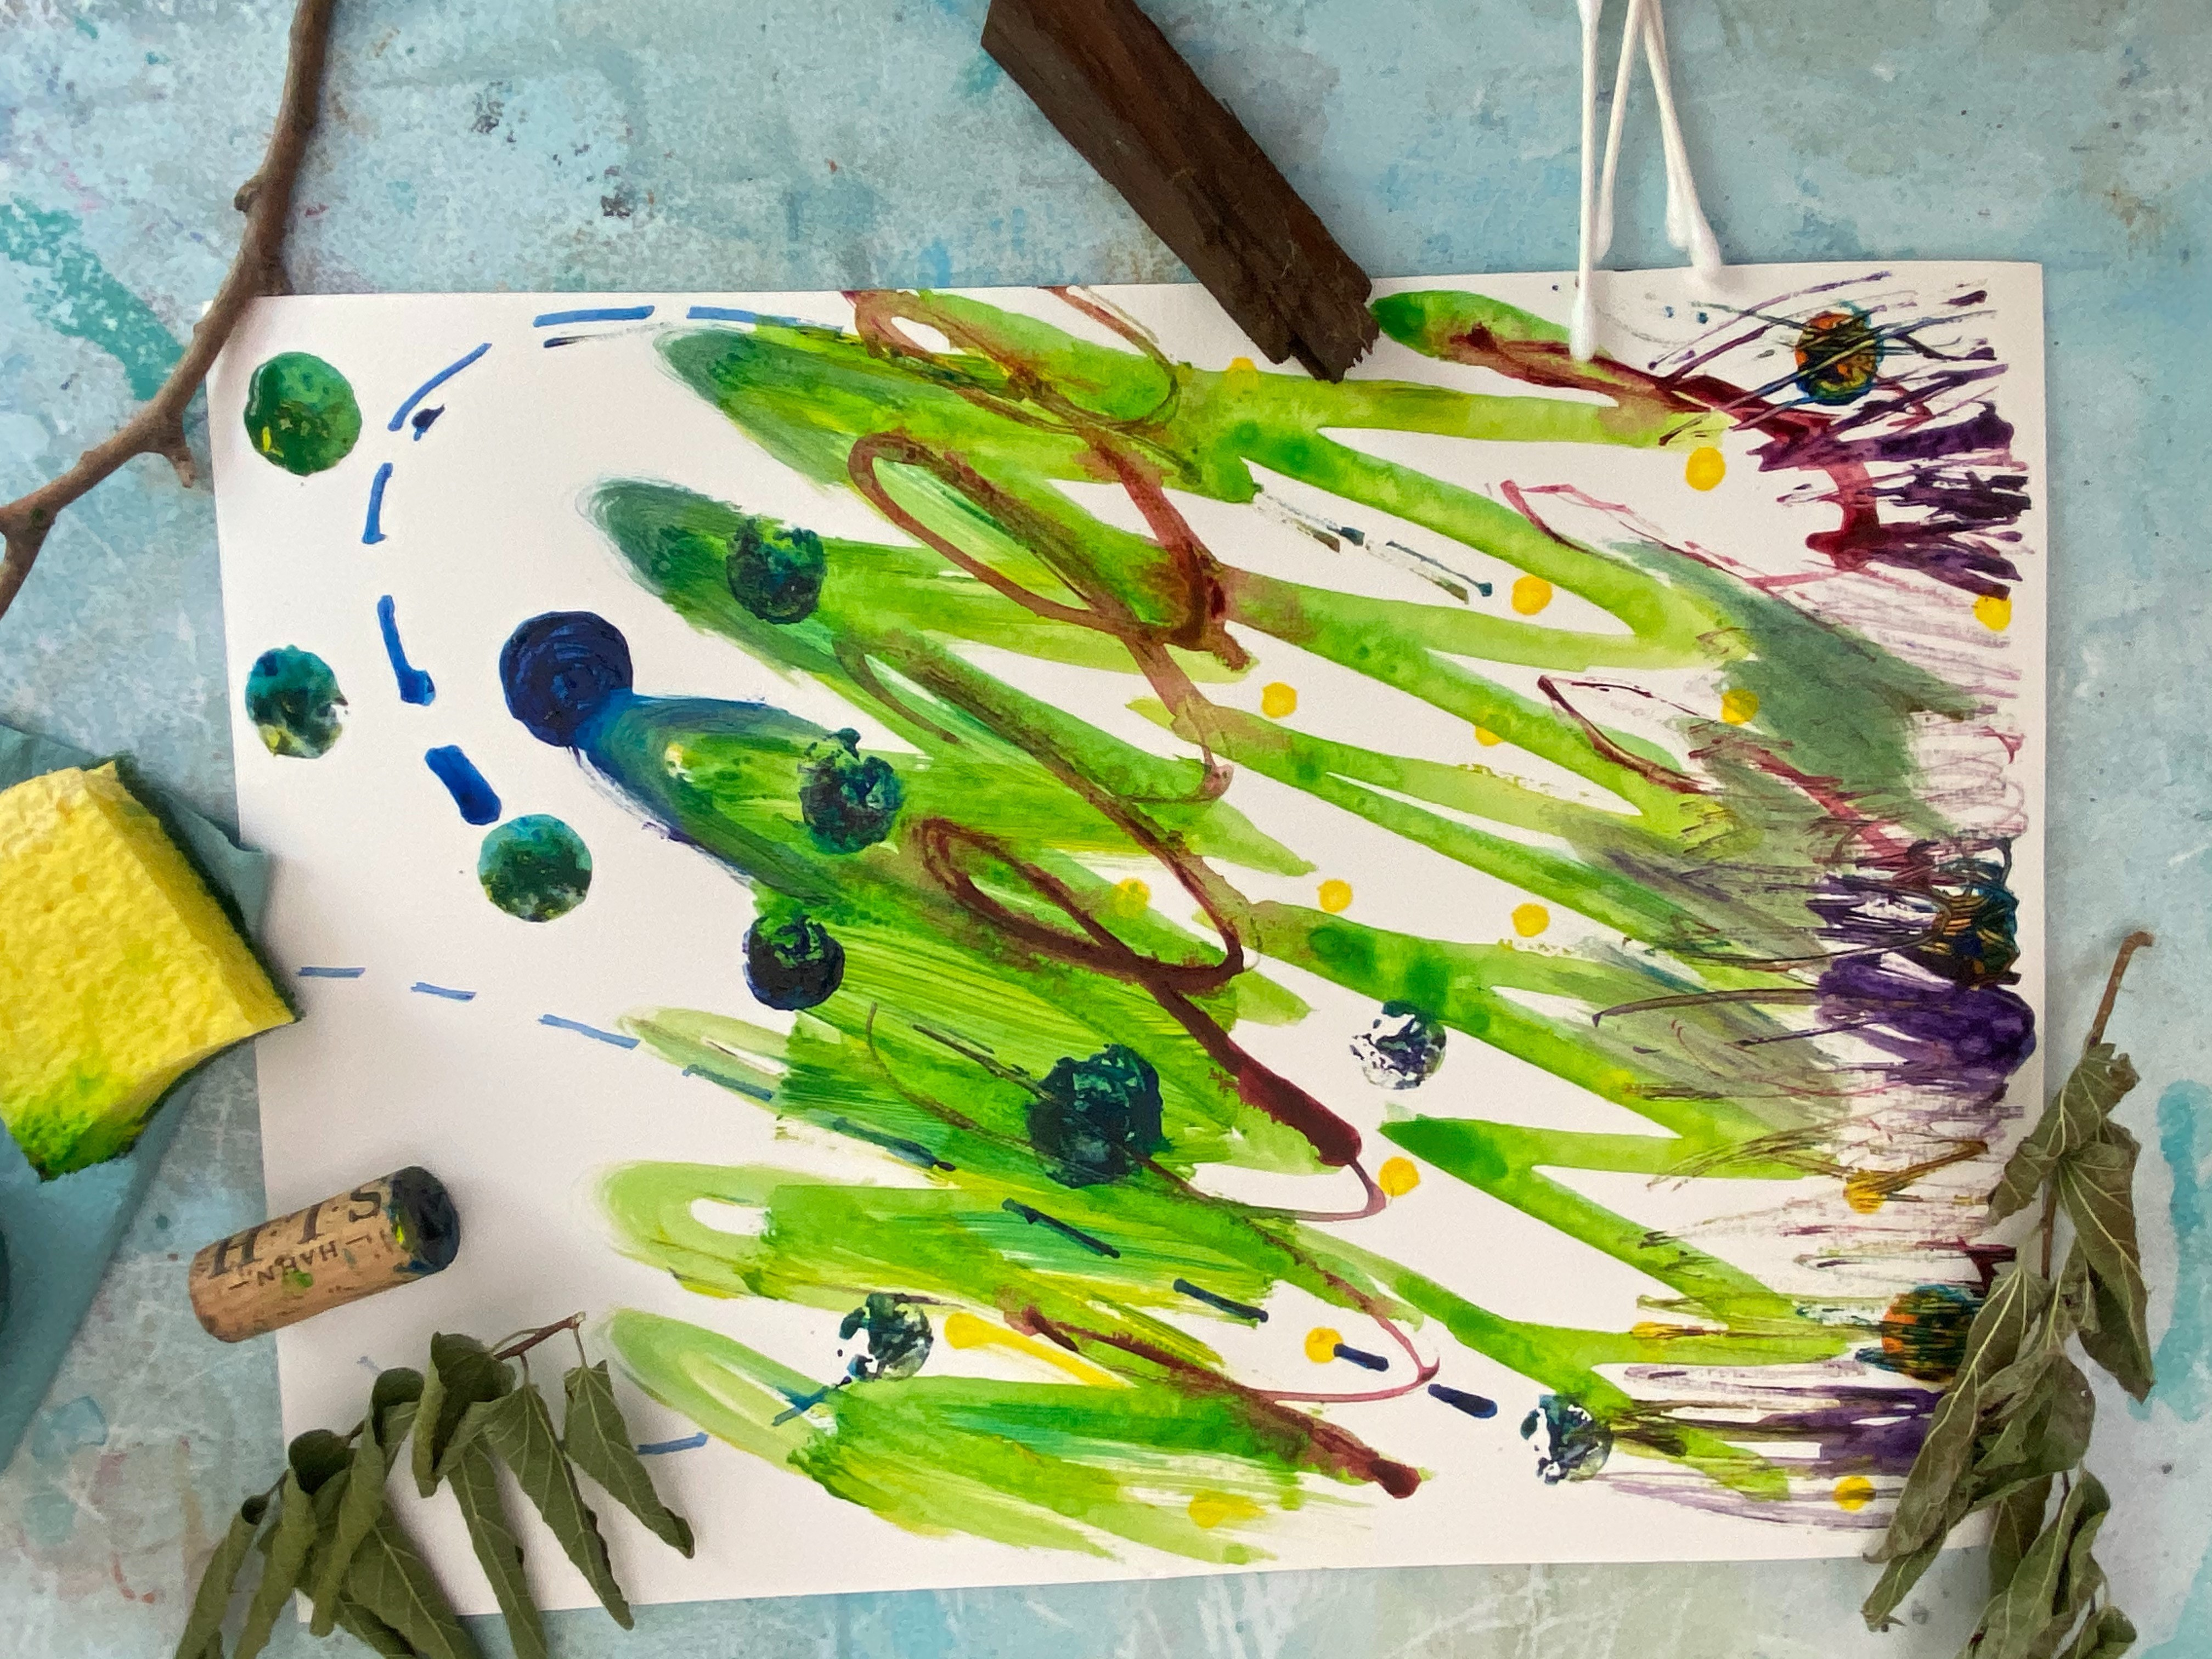 An abstract painting featuring blue, green, purple and yellow -- along with improvised art materials like a sponge, wine cork and leaves